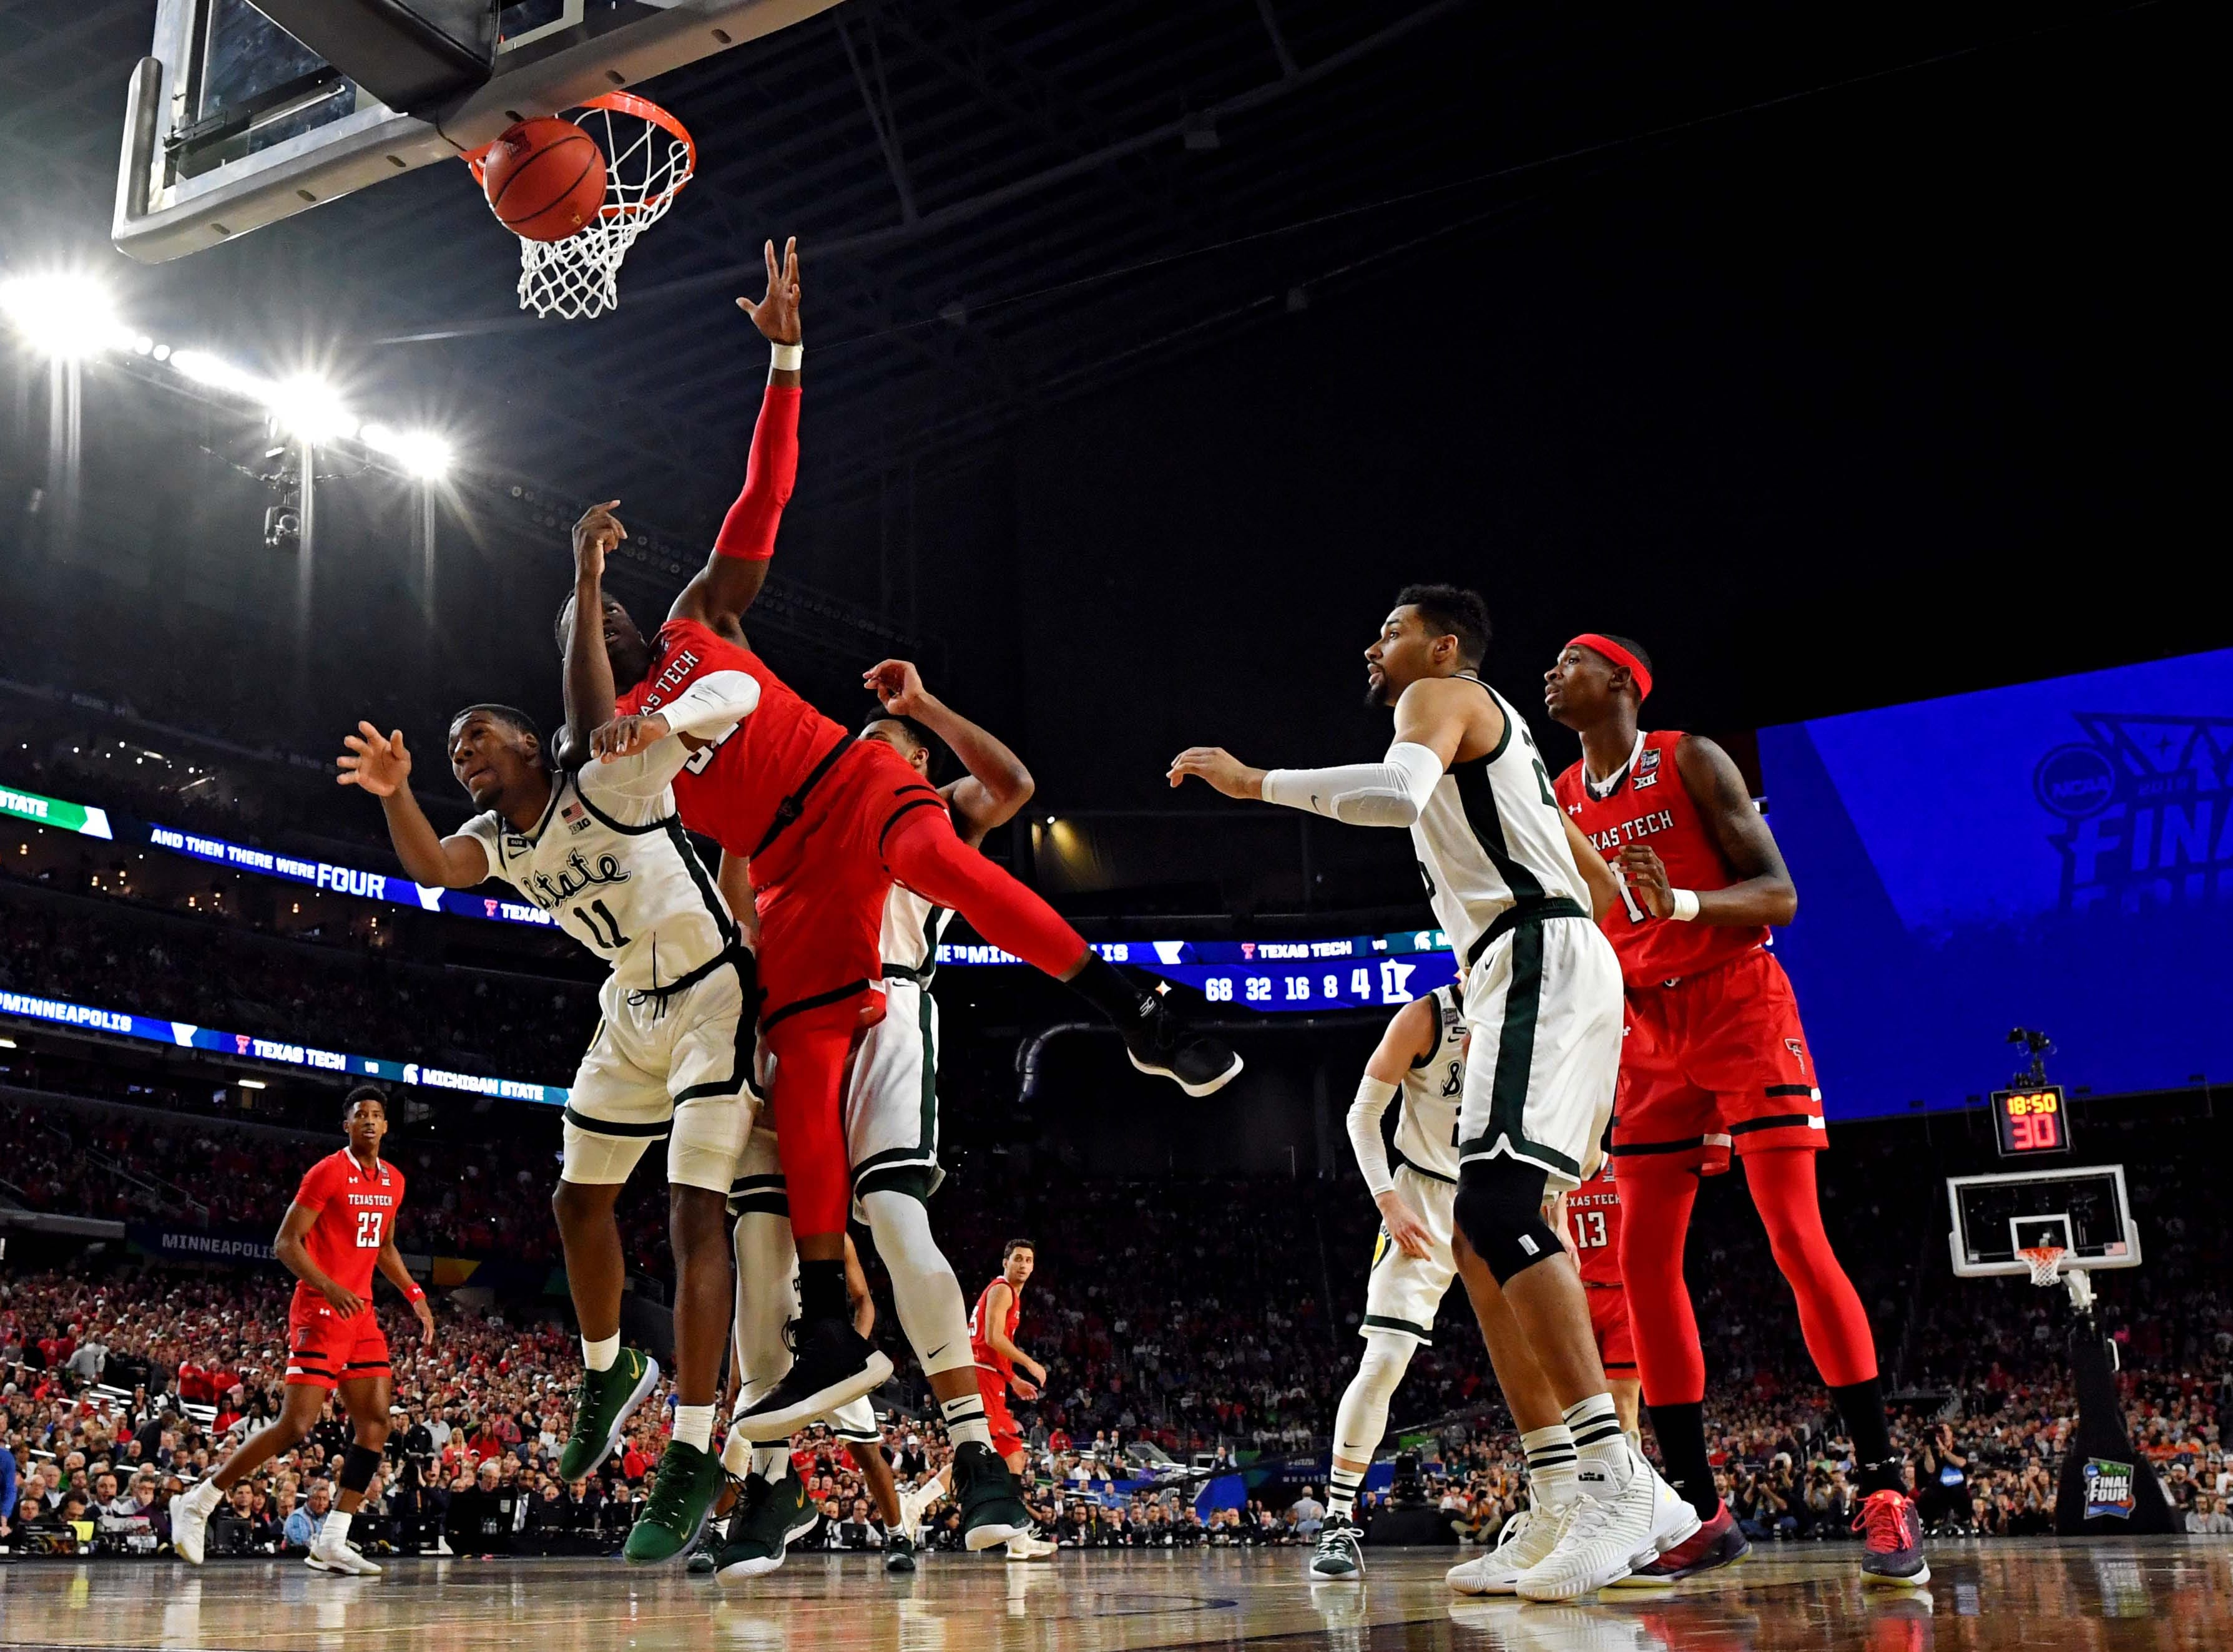 Michigan State Spartans forward Aaron Henry (11) and Texas Tech Red Raiders center Norense Odiase (32) go for a rebound.